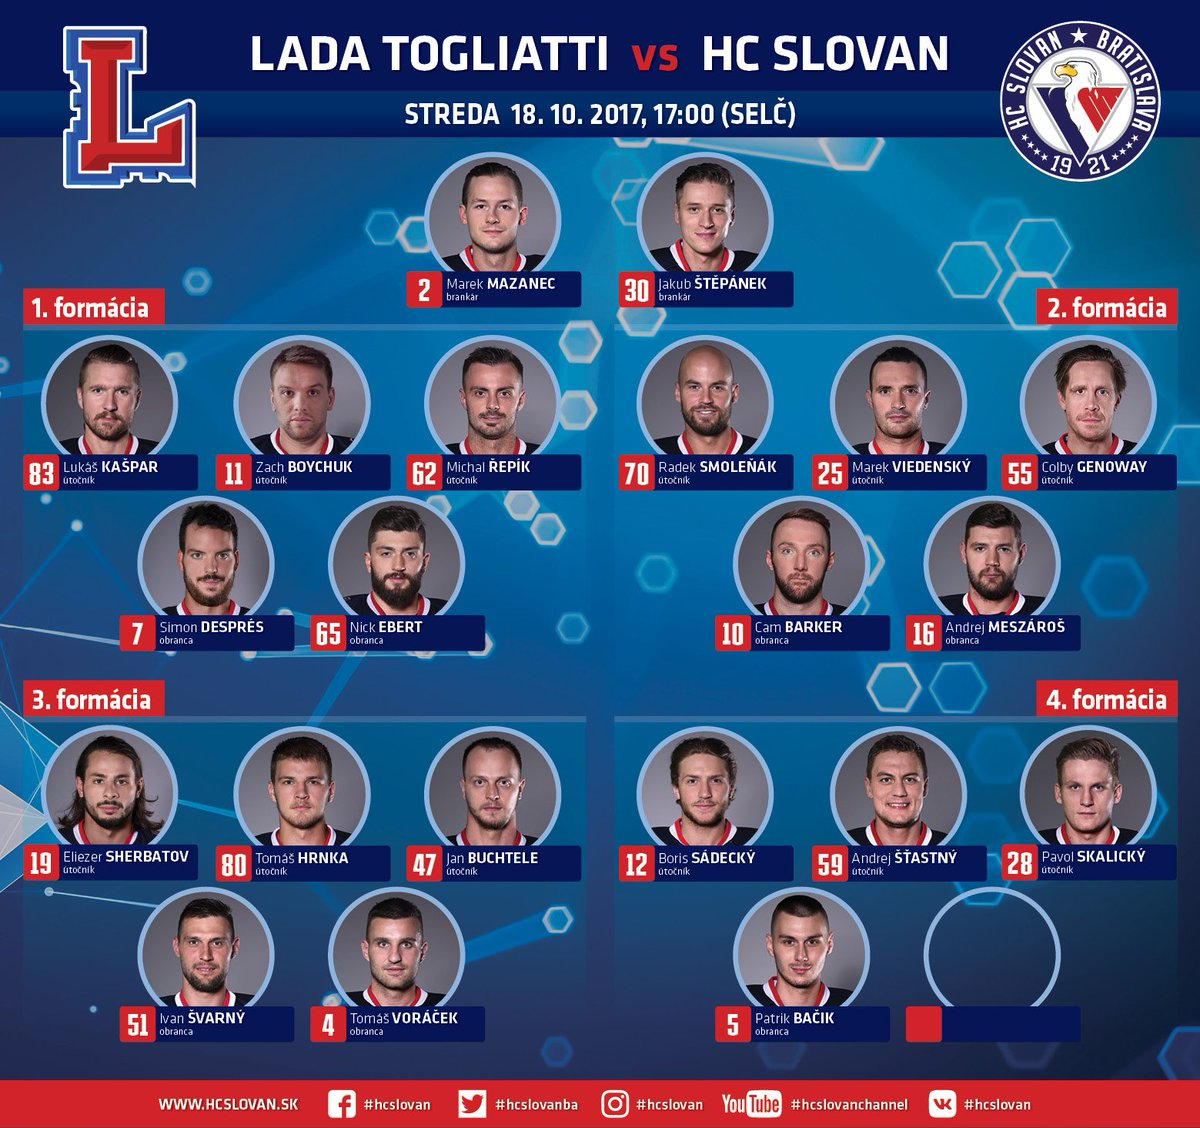 Here is the #hcslovan line up that should skate today vs @hc_lada. Face off 5:00 PM CEST. @khl #VerniSlovanu https://t.co/LOFWHTbl8A